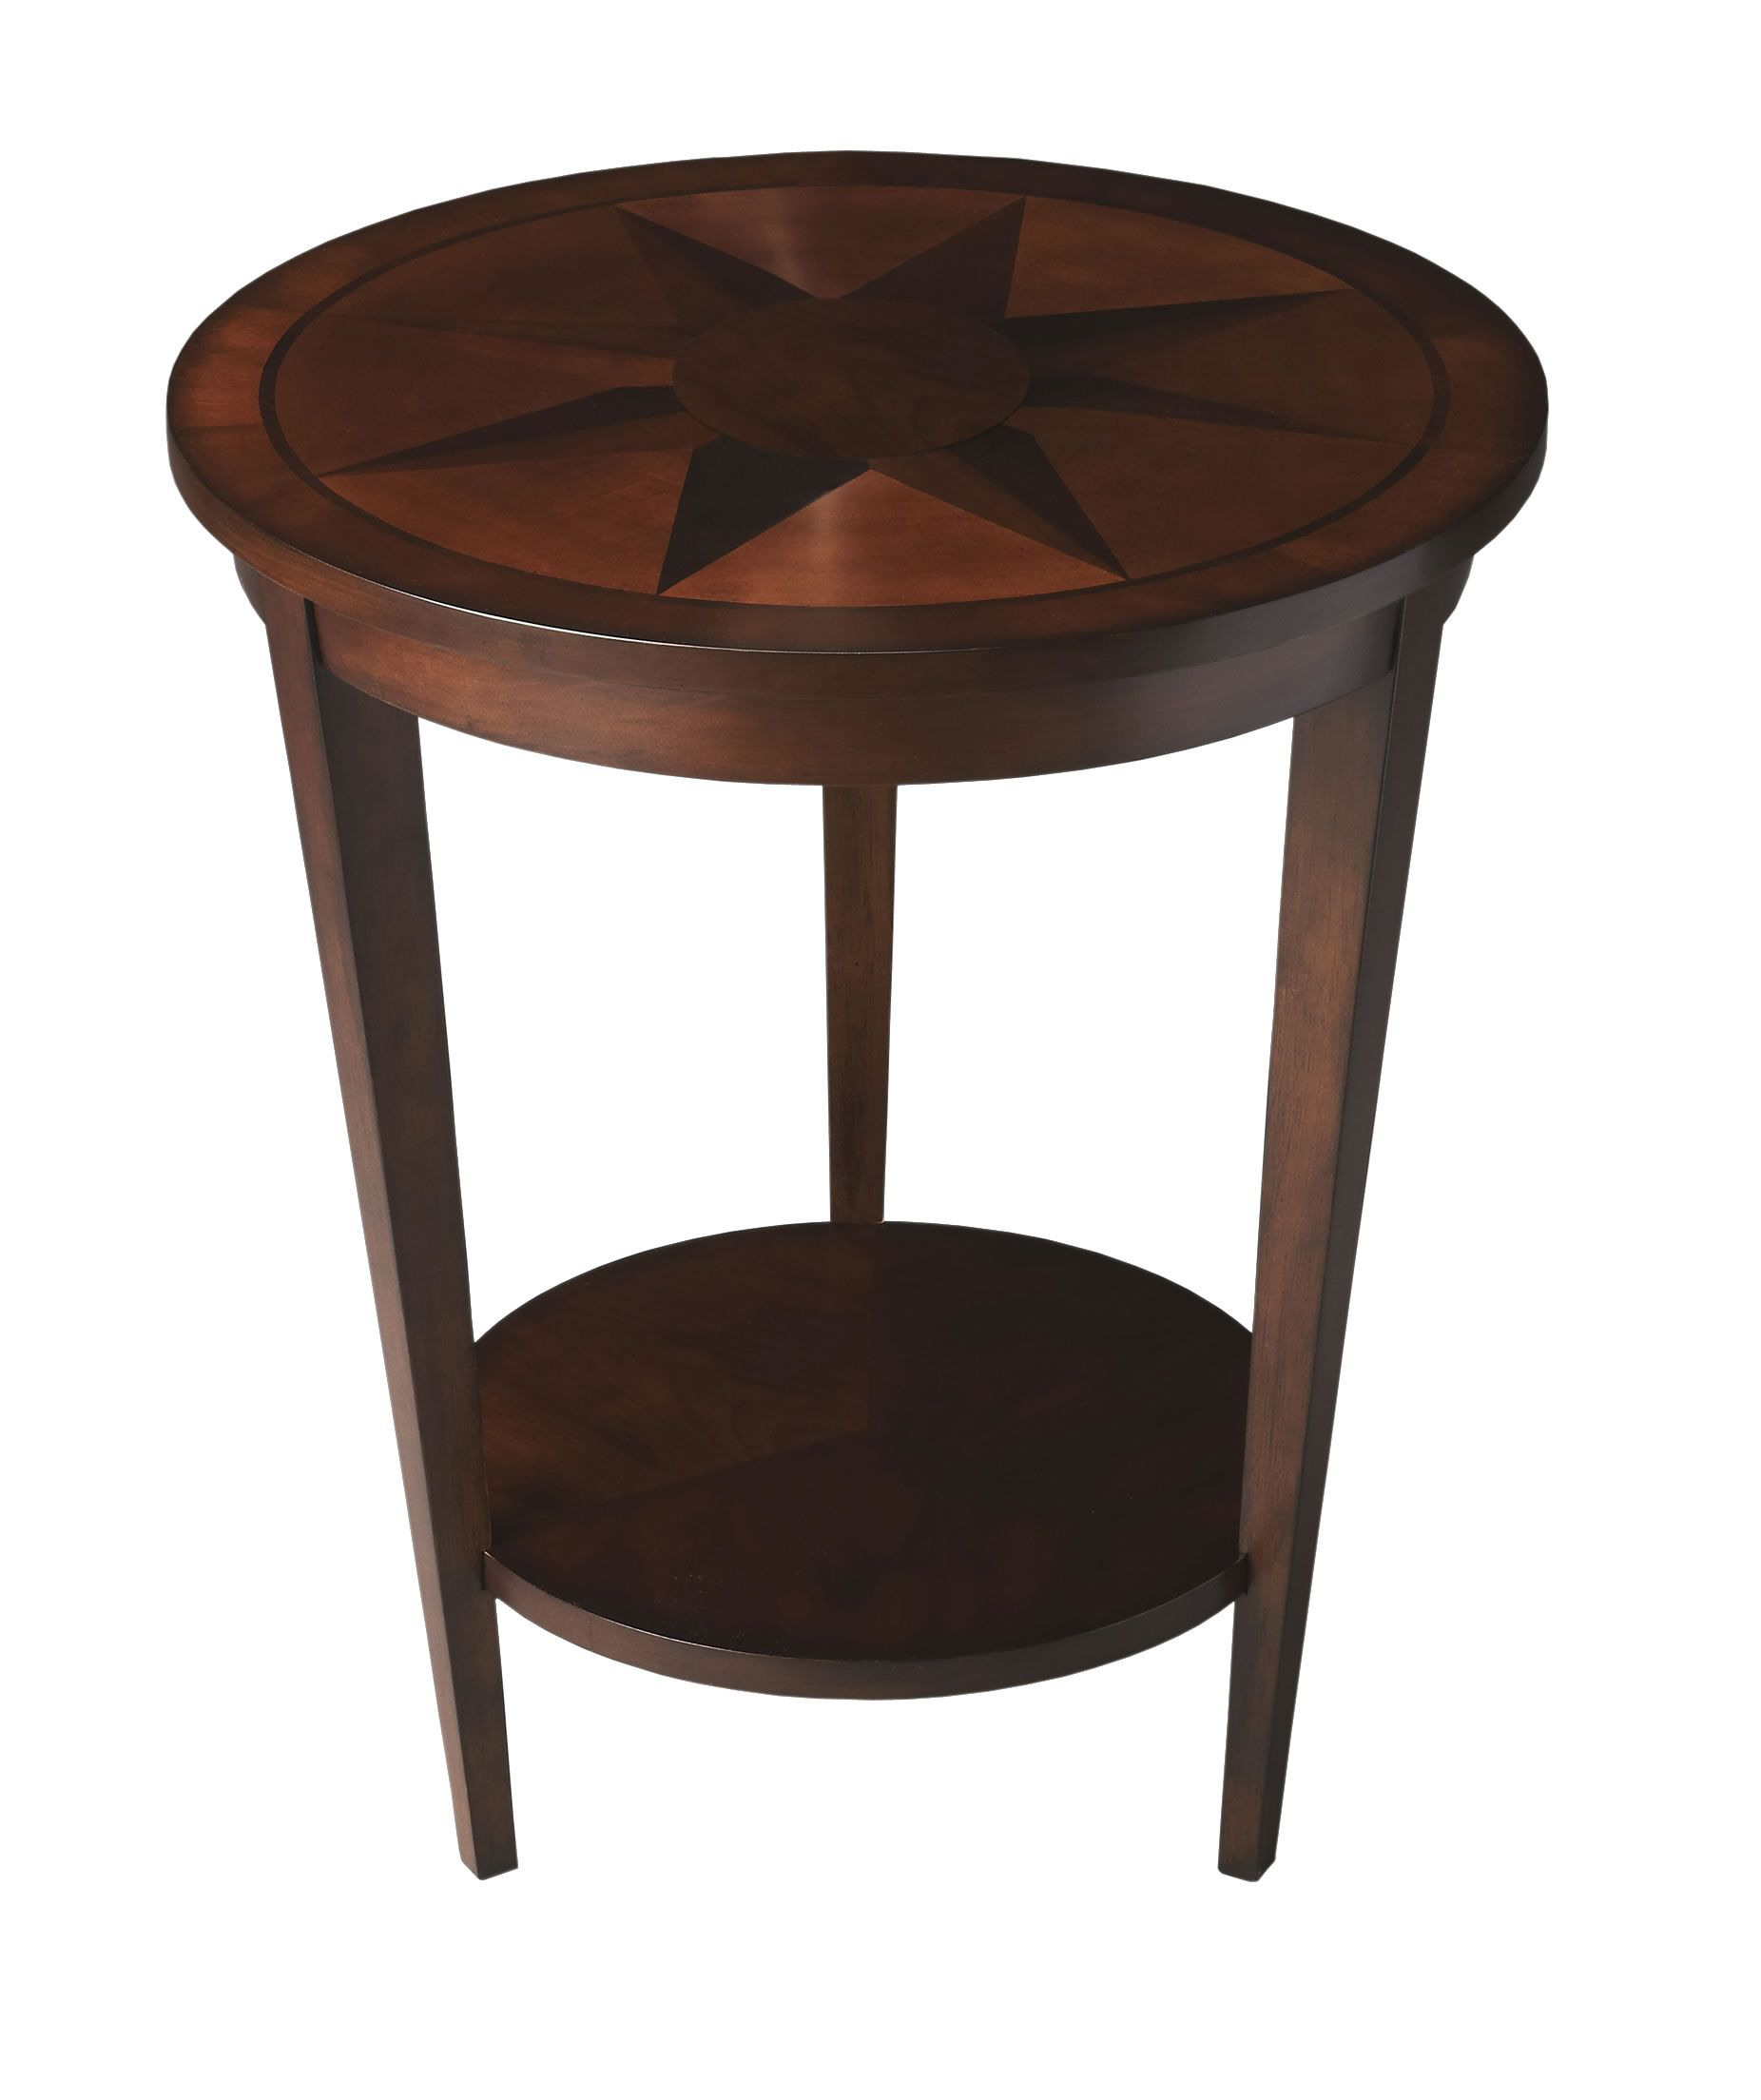 nautical compass side table espresso this dazzling transitional accent features engaging starburst inlay and reverse tapered legs conjoined light fixtures ikea small square lamps